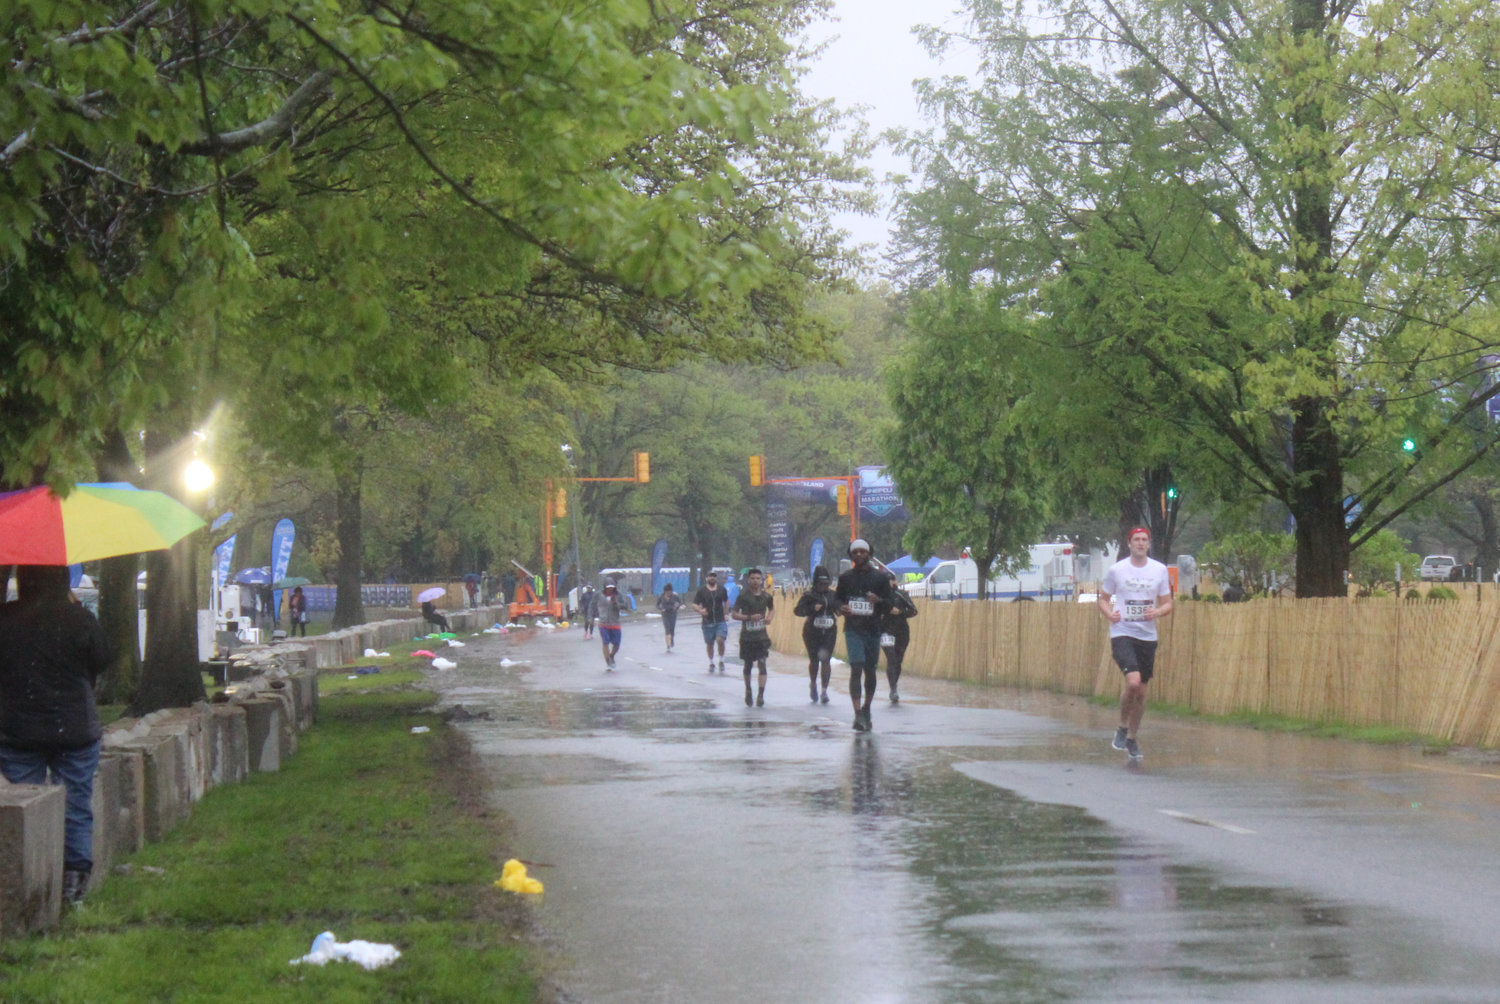 The NEFCU 2019 Long Island Marathon kicked off at Eisenhower Park on May 5 and, despite rain and wind, thousands of runners made their way through Nassau County's streets during the course of the race.